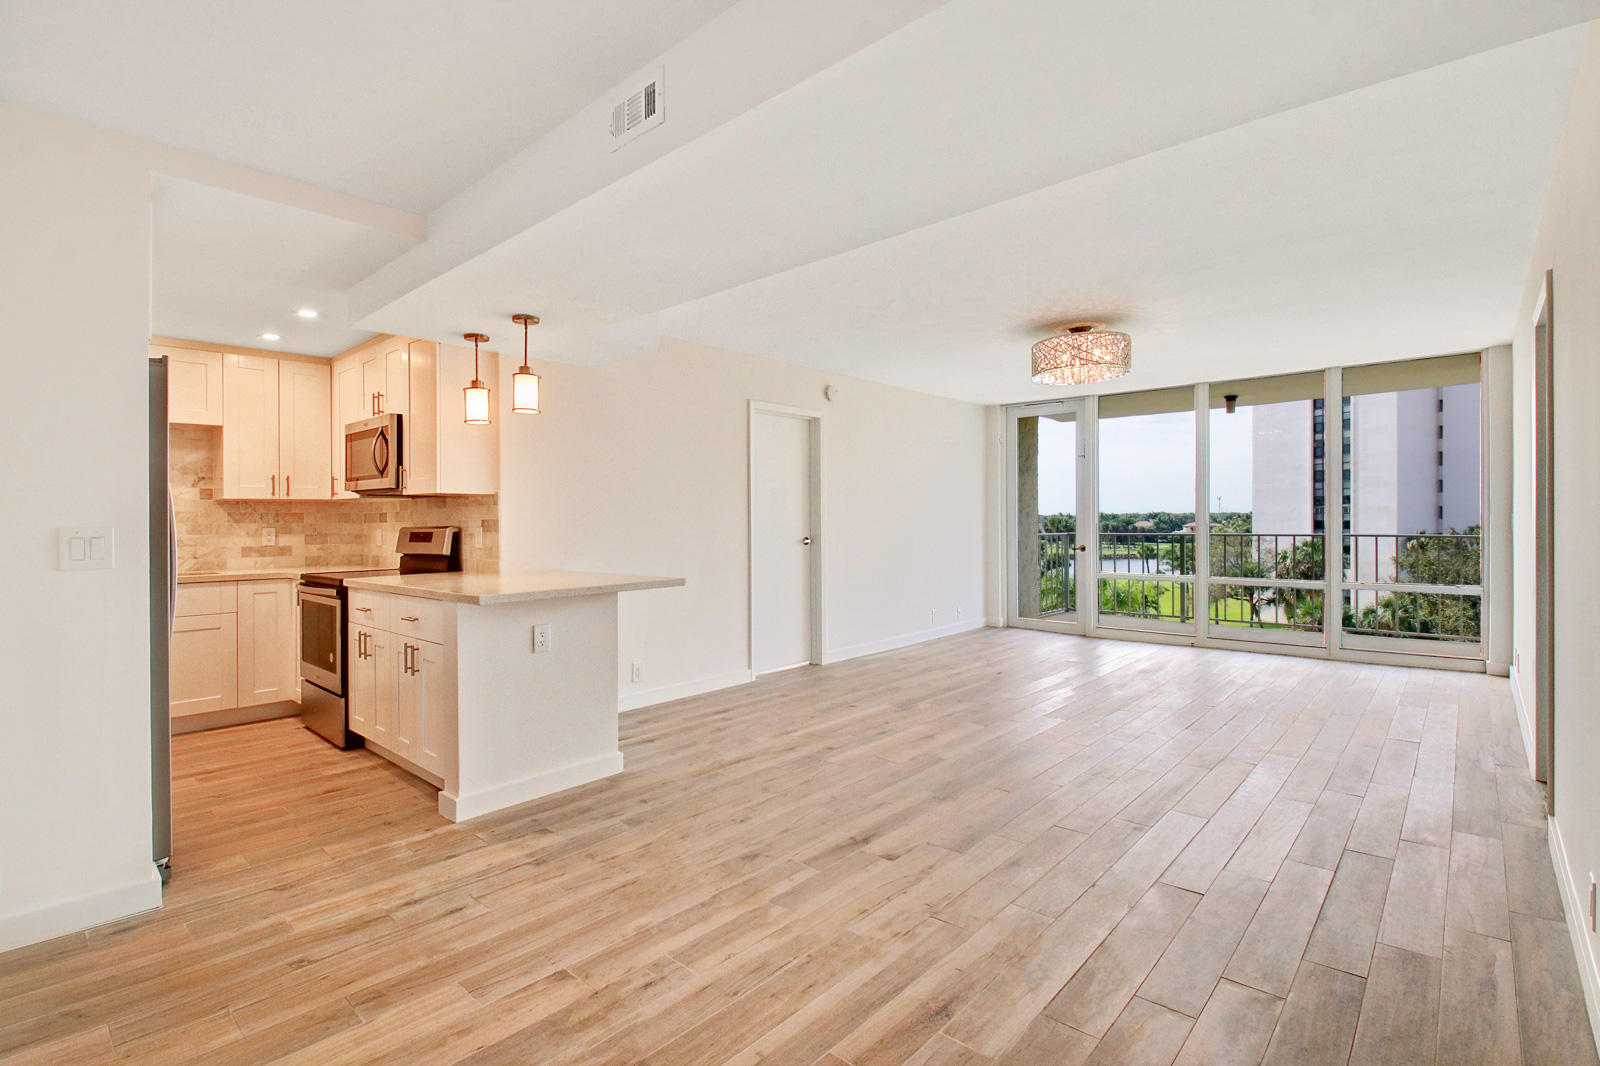 336 Golfview Road 514, North Palm Beach, Florida 33408, 2 Bedrooms Bedrooms, ,2 BathroomsBathrooms,A,Condominium,Golfview,RX-10494557